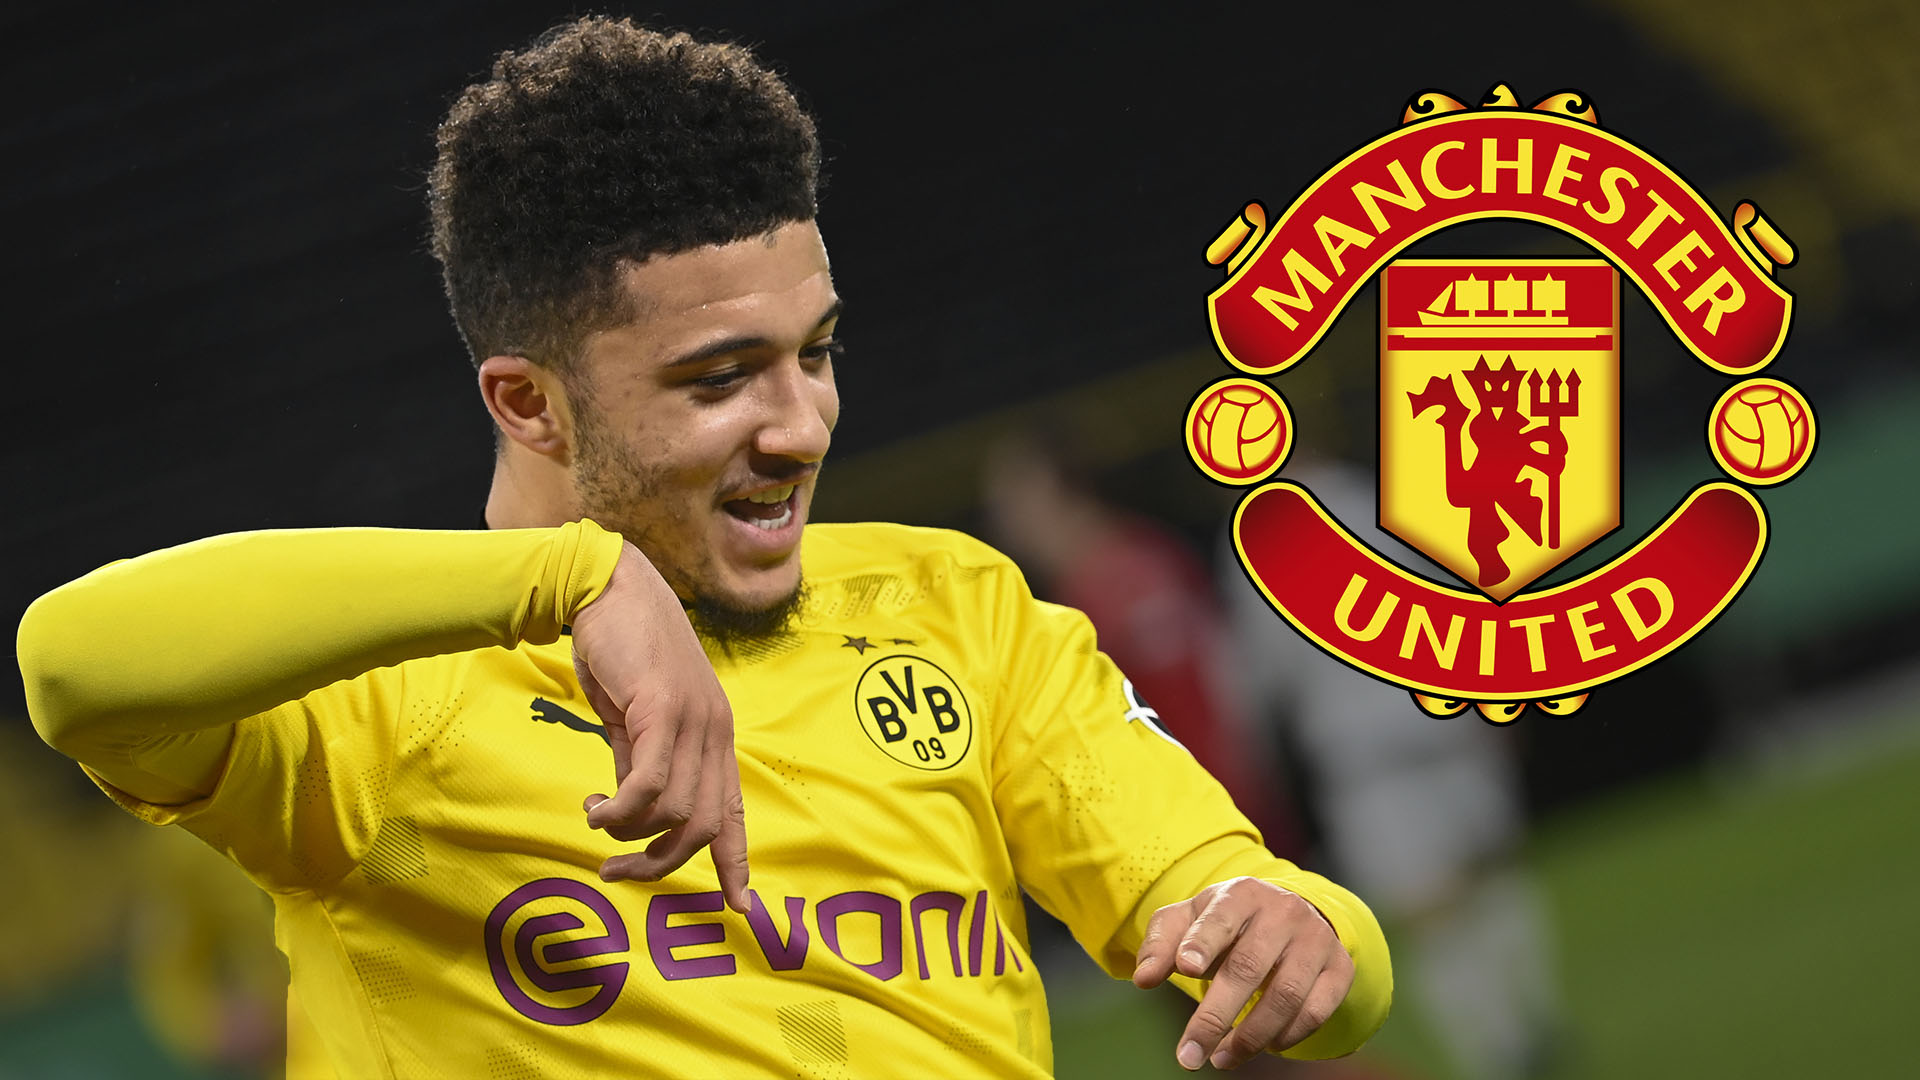 Man Utd complete £73m Sancho signing as England international signs five-year contract